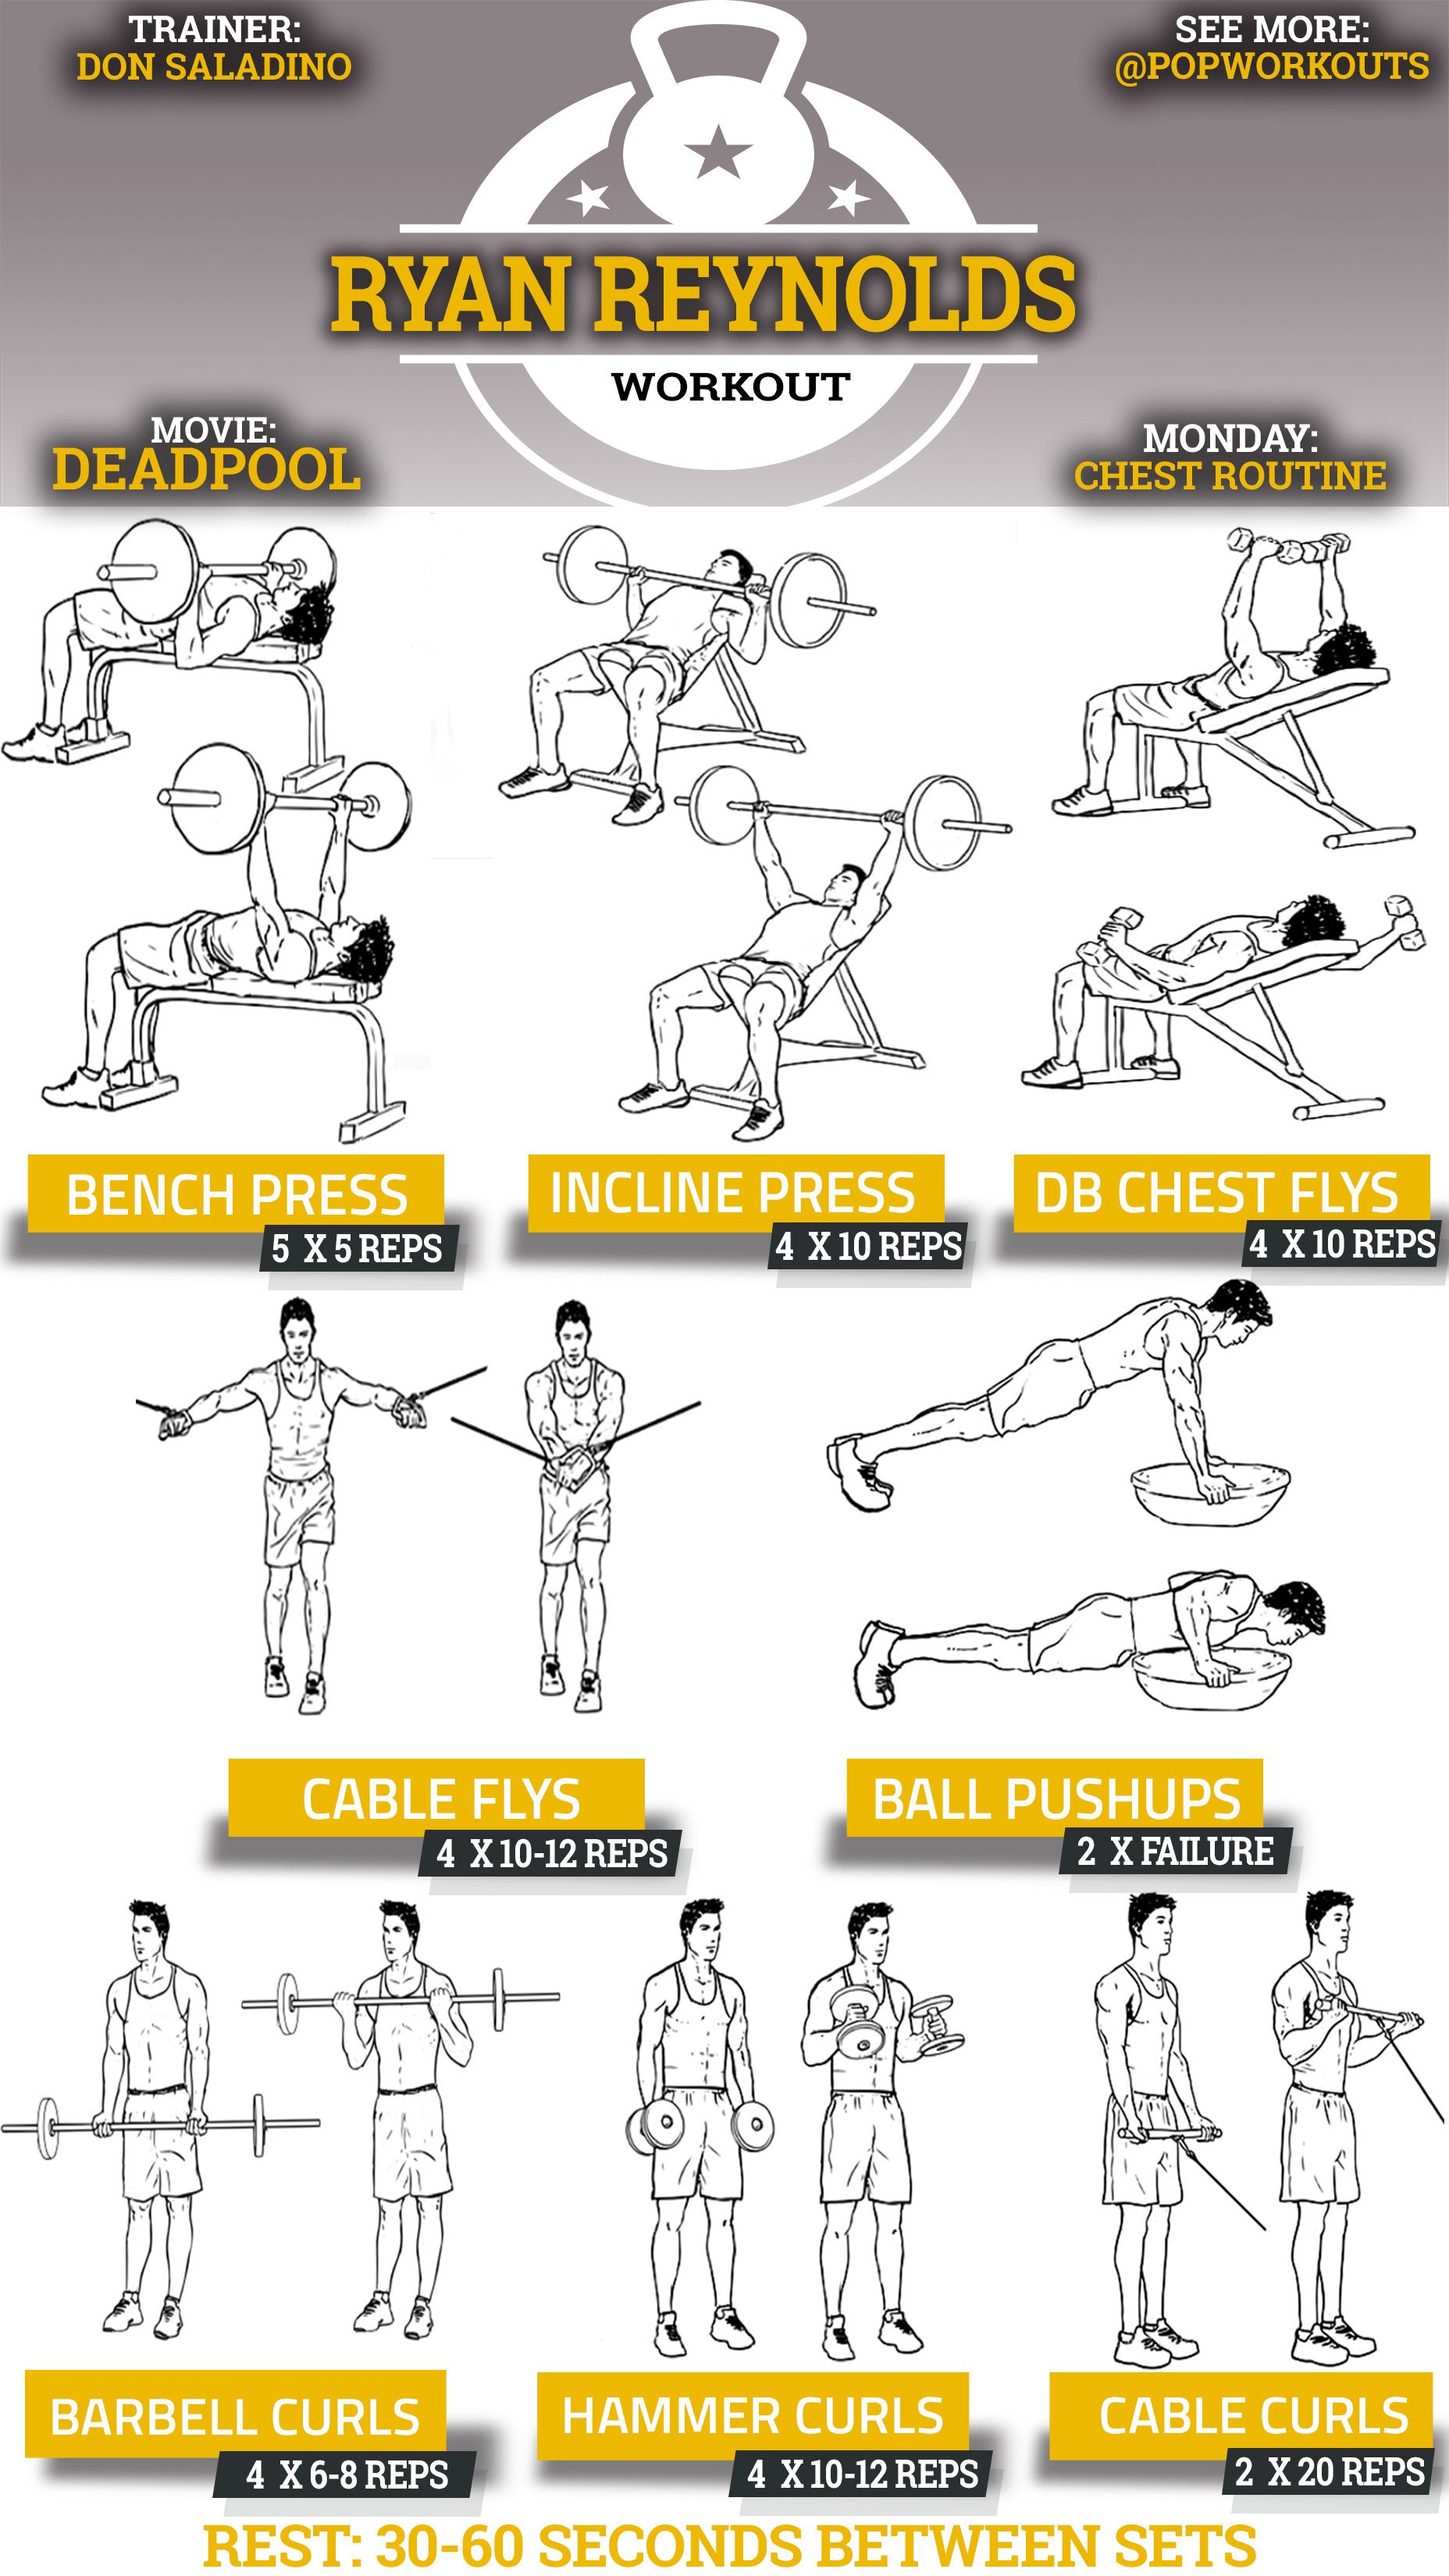 Deadpool workout ryan reynolds pop workouts deadpool workout ryan reynolds chart nvjuhfo Choice Image